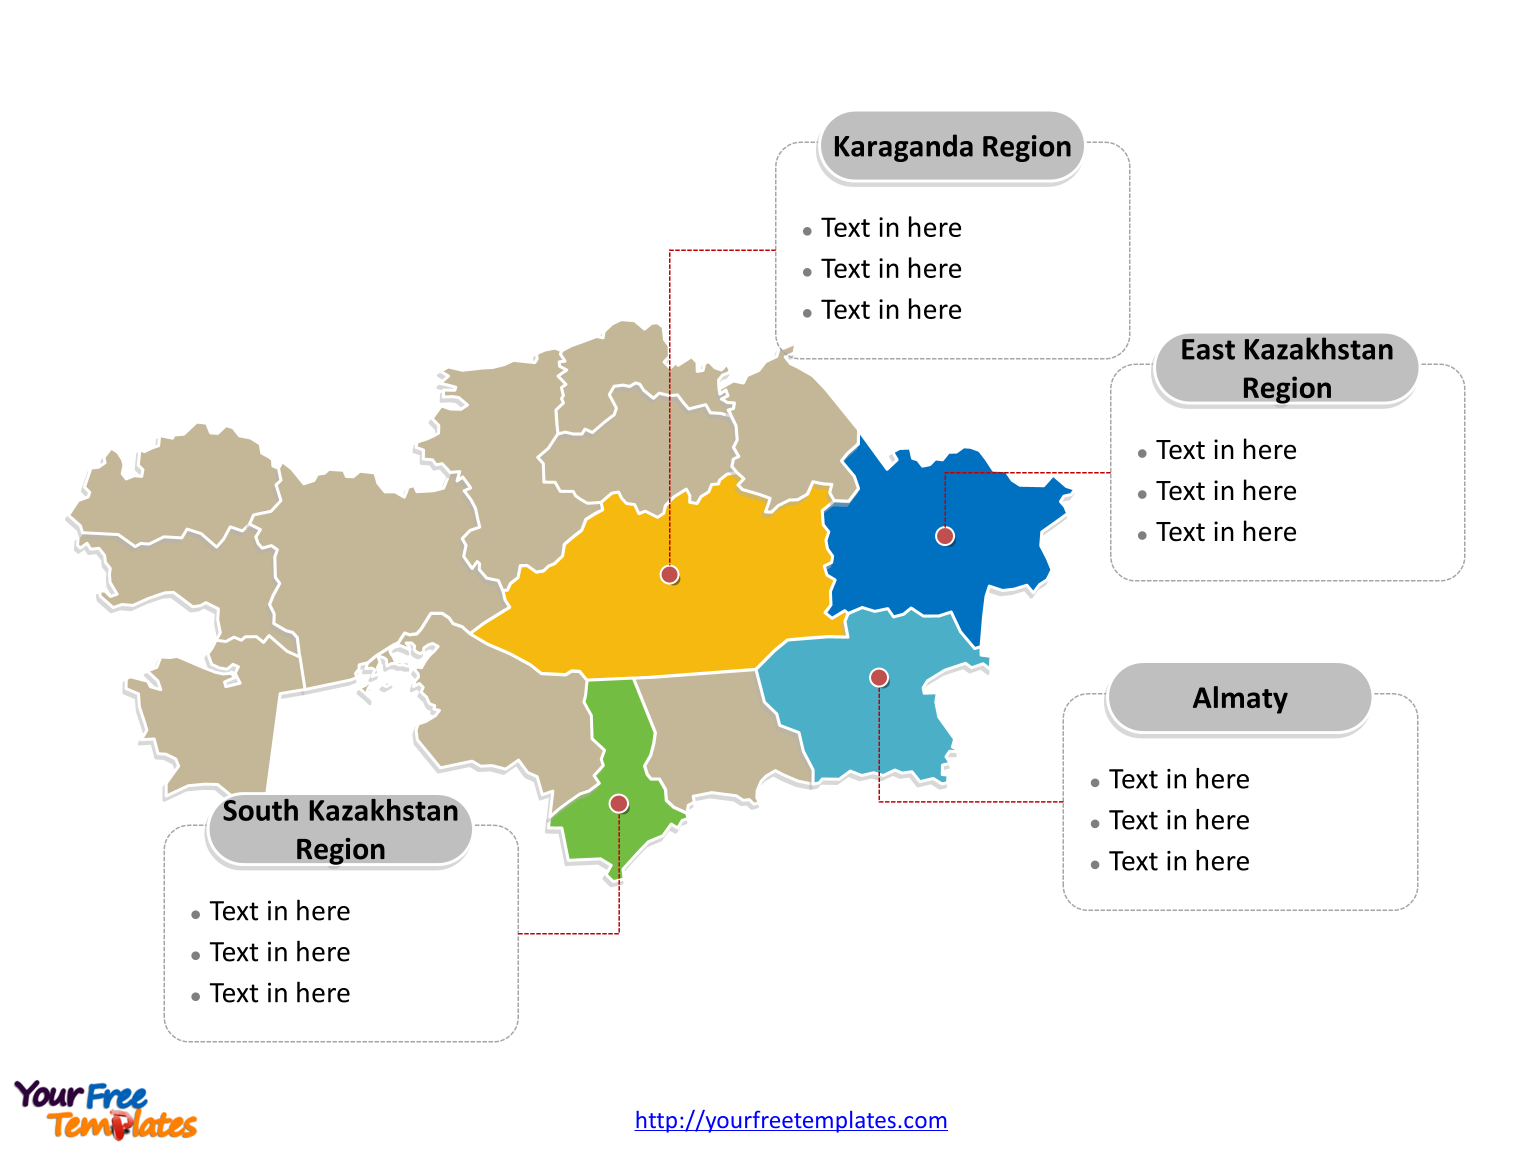 Immediately free download editable kazakhstan outline and political immediately free download editable kazakhstan outline and political map in editable format no registration needed gumiabroncs Image collections